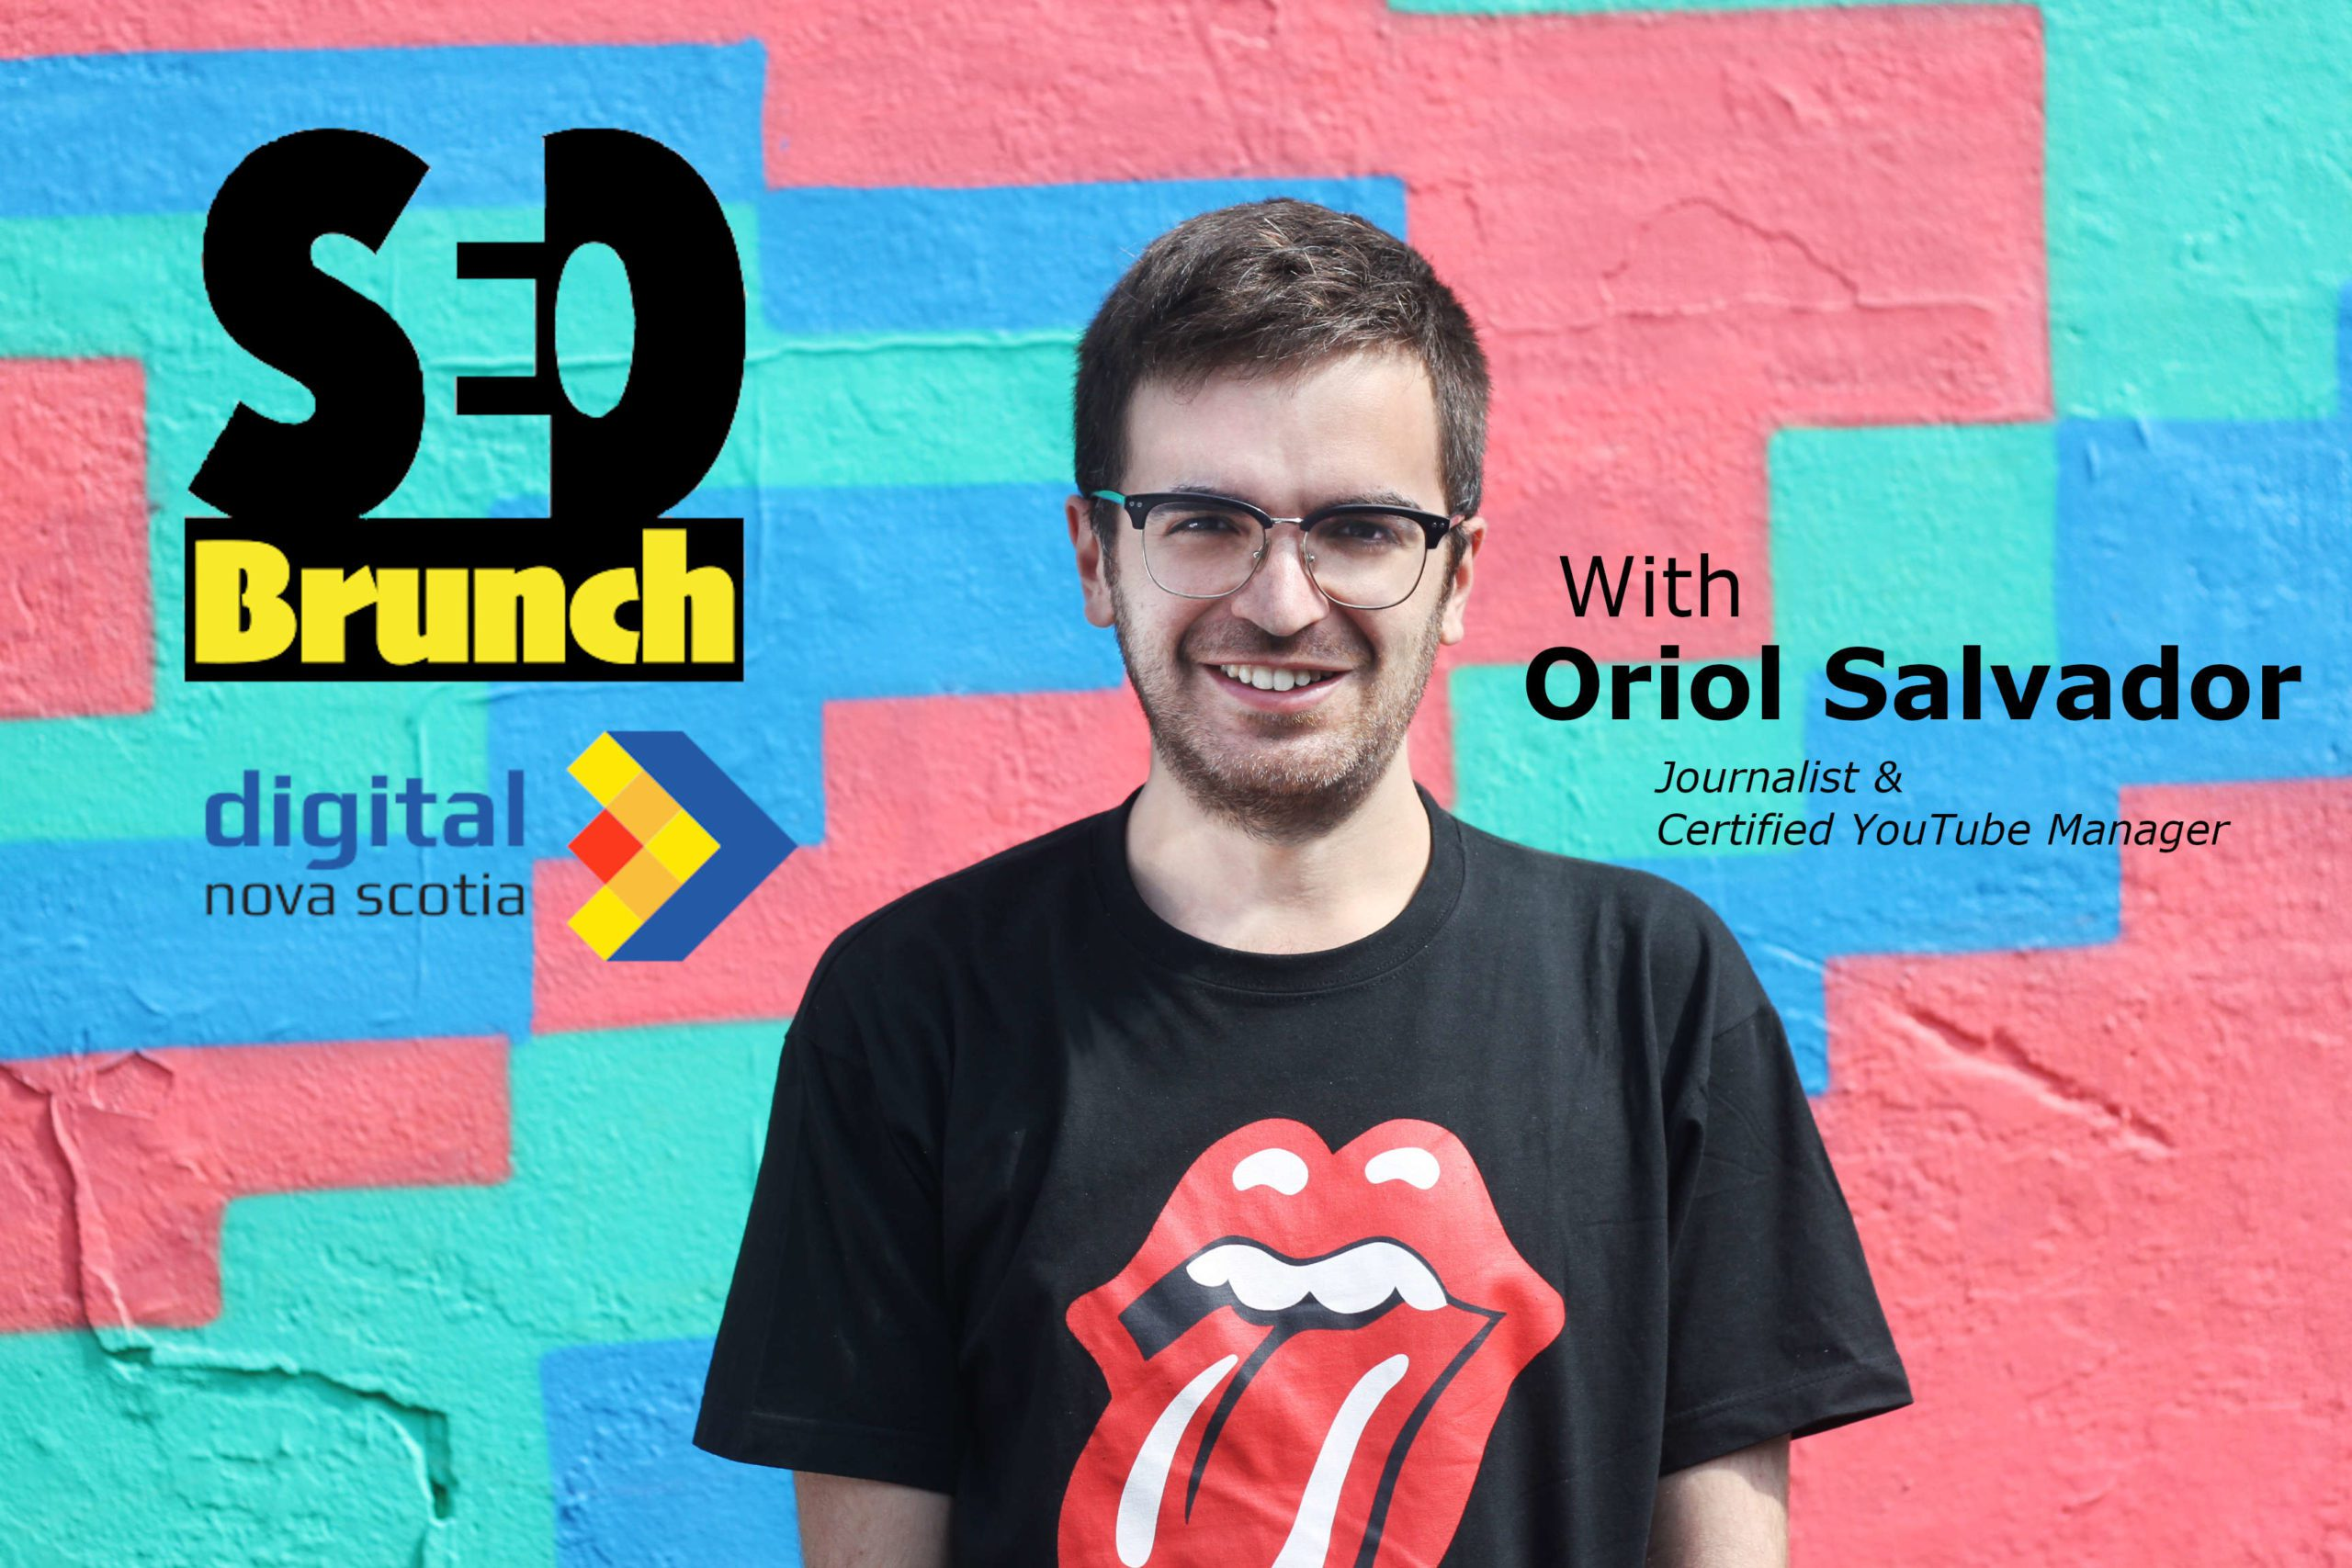 Oriol Salvador in front of a colourful wall with SEO Brunch and DNS logos